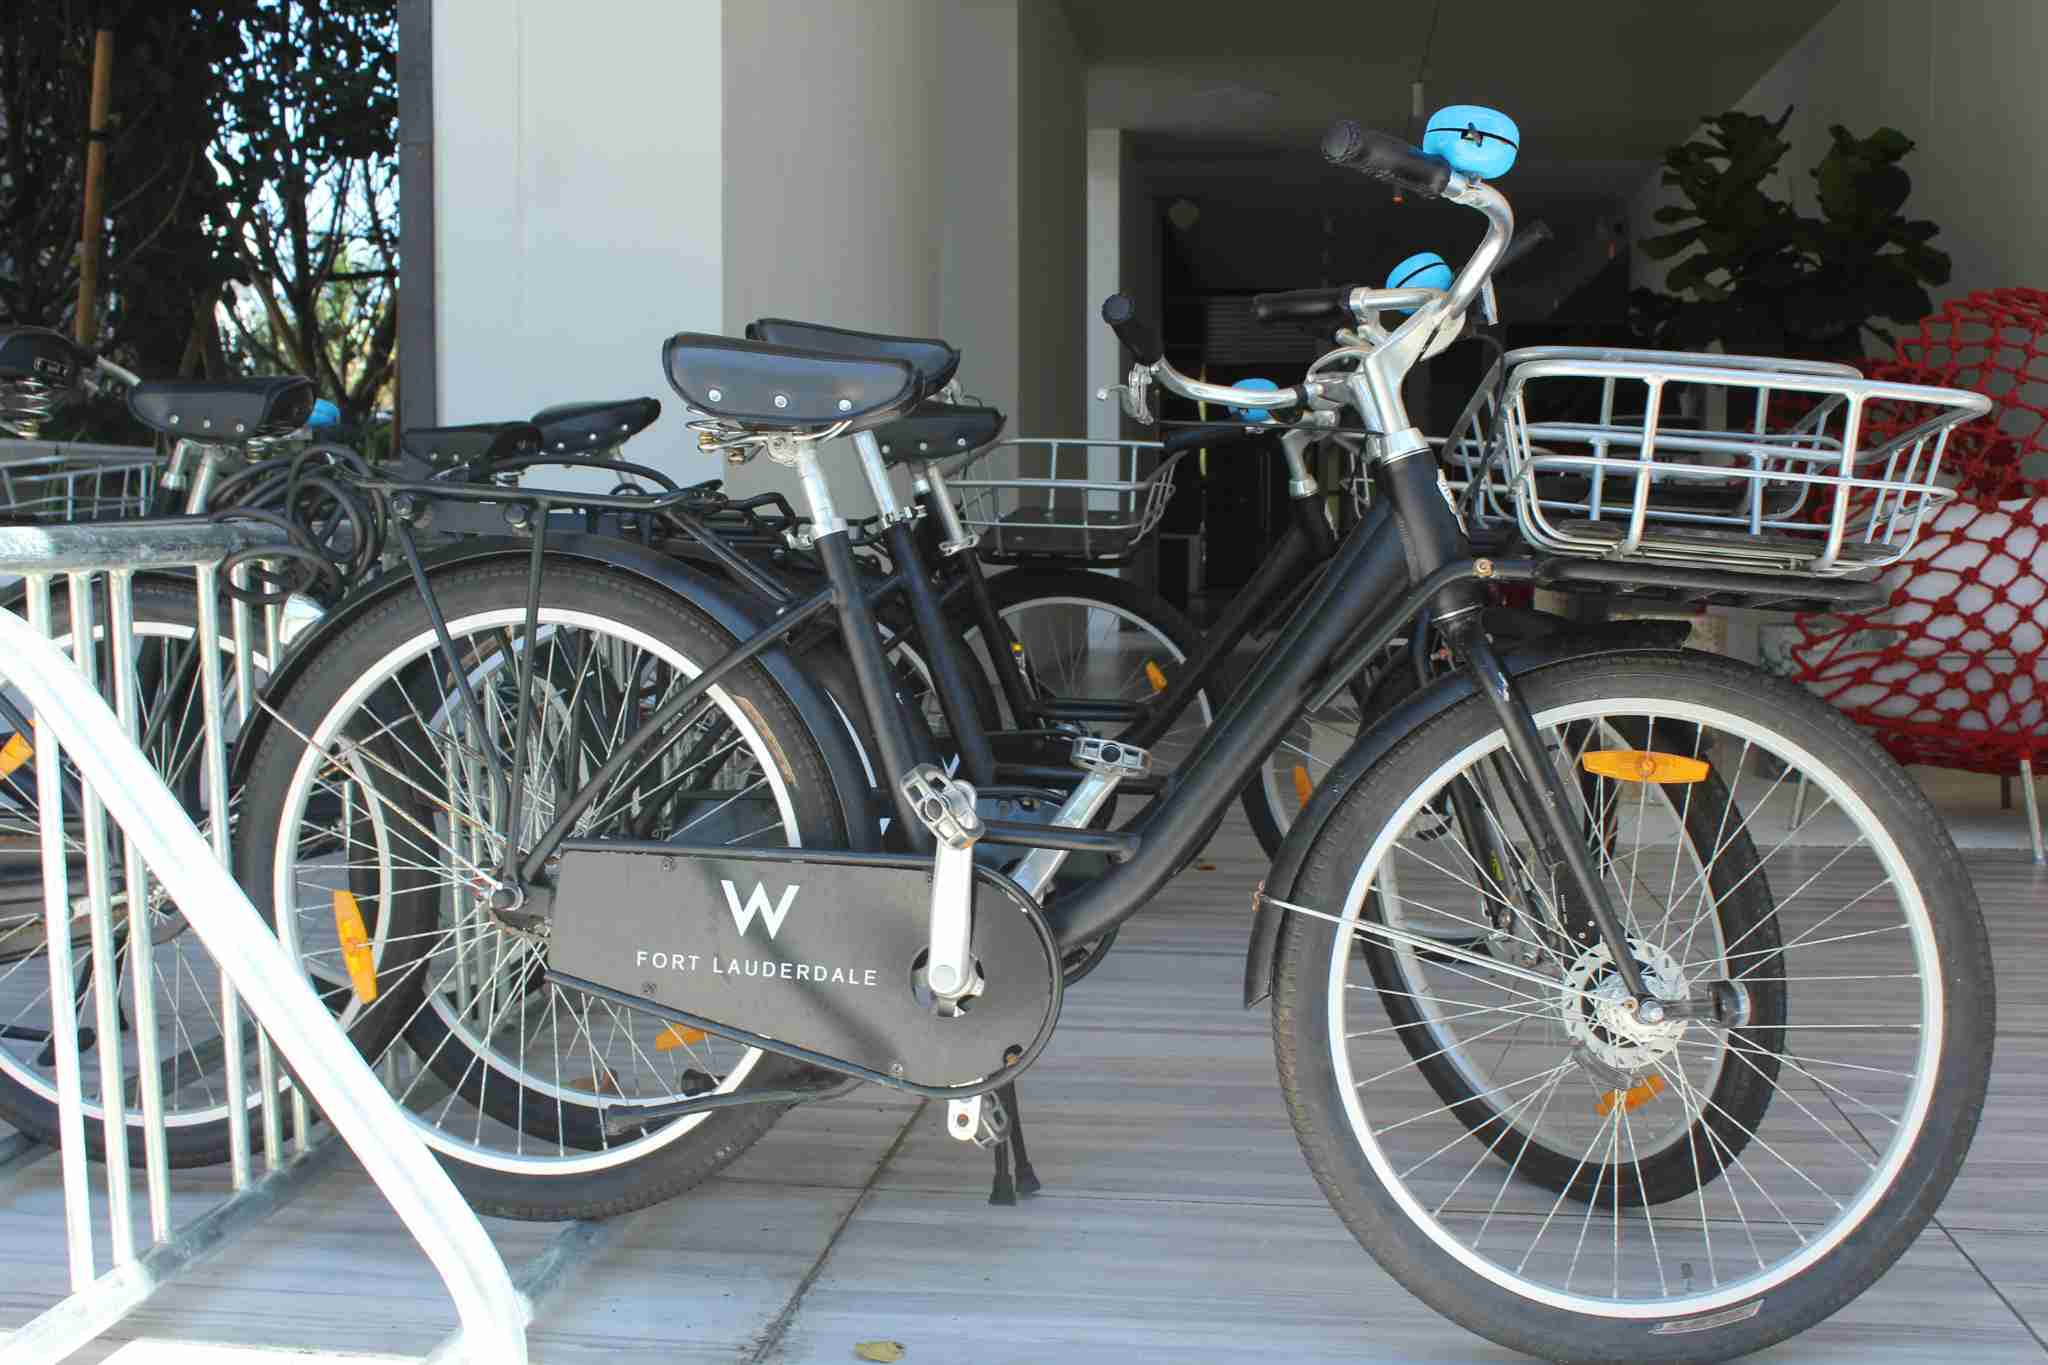 The resort fee included two bike rentals of up to 4 hours, among other amenities.